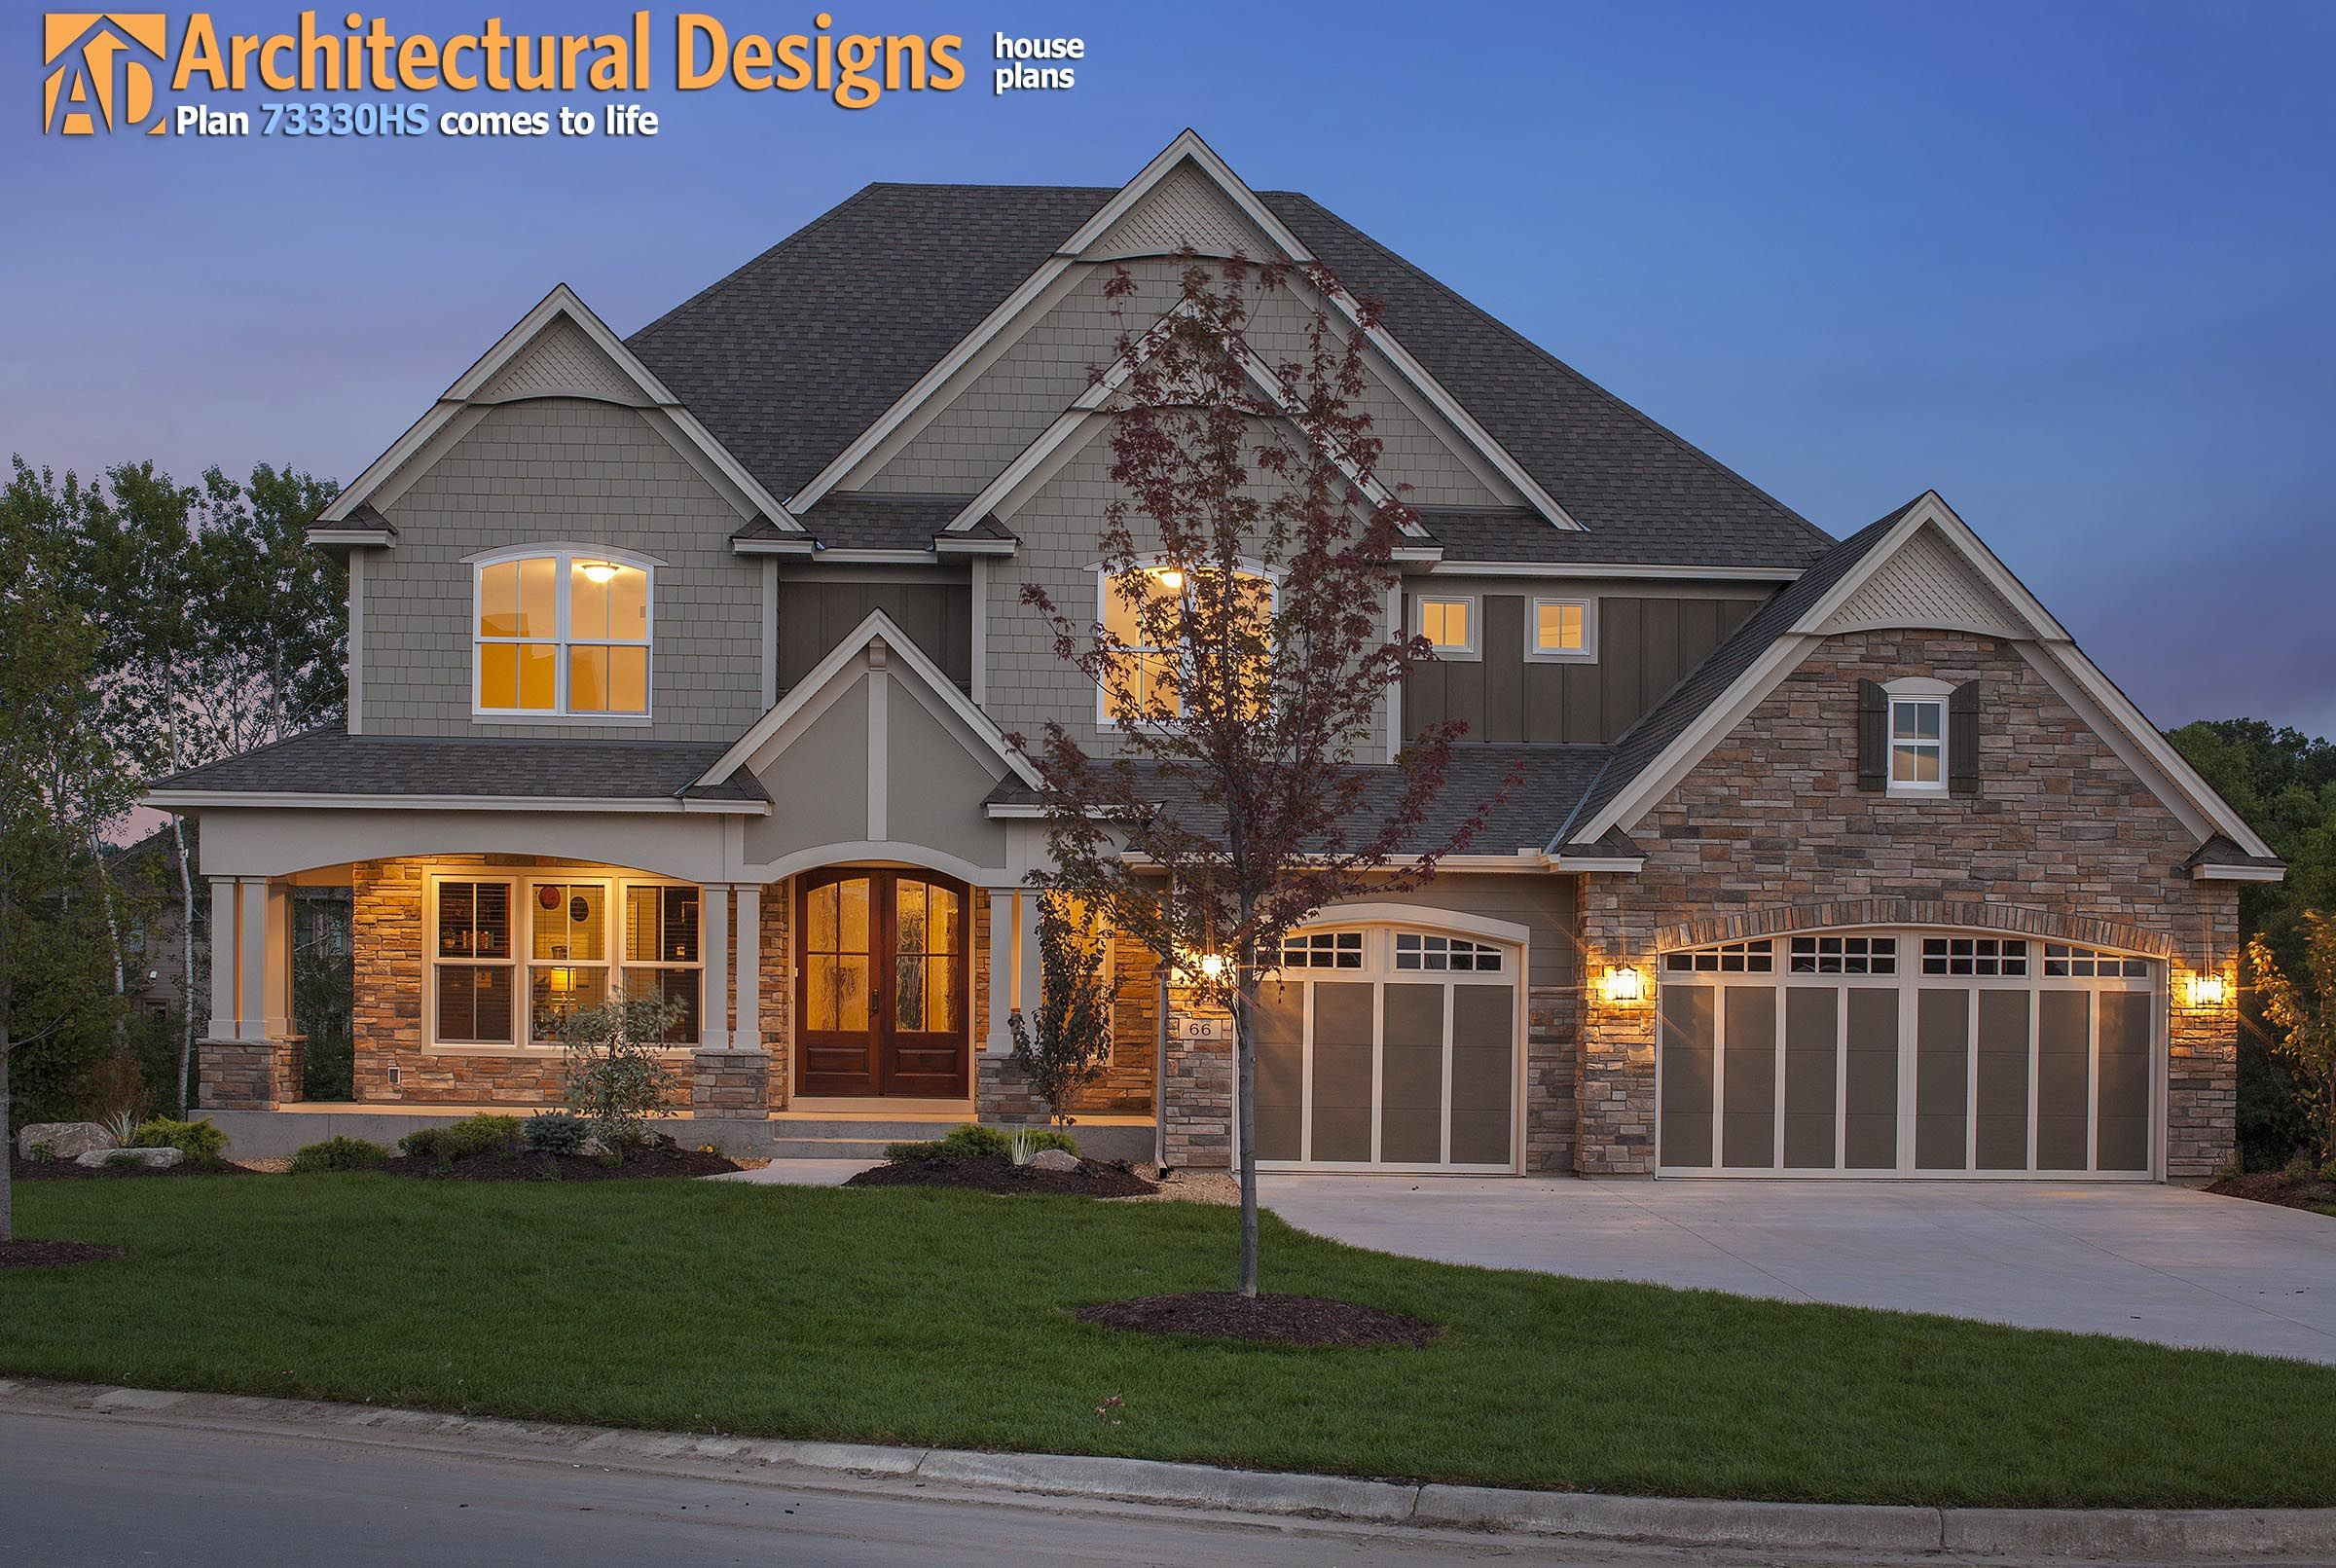 Exclusive House Plan 73330HS view of